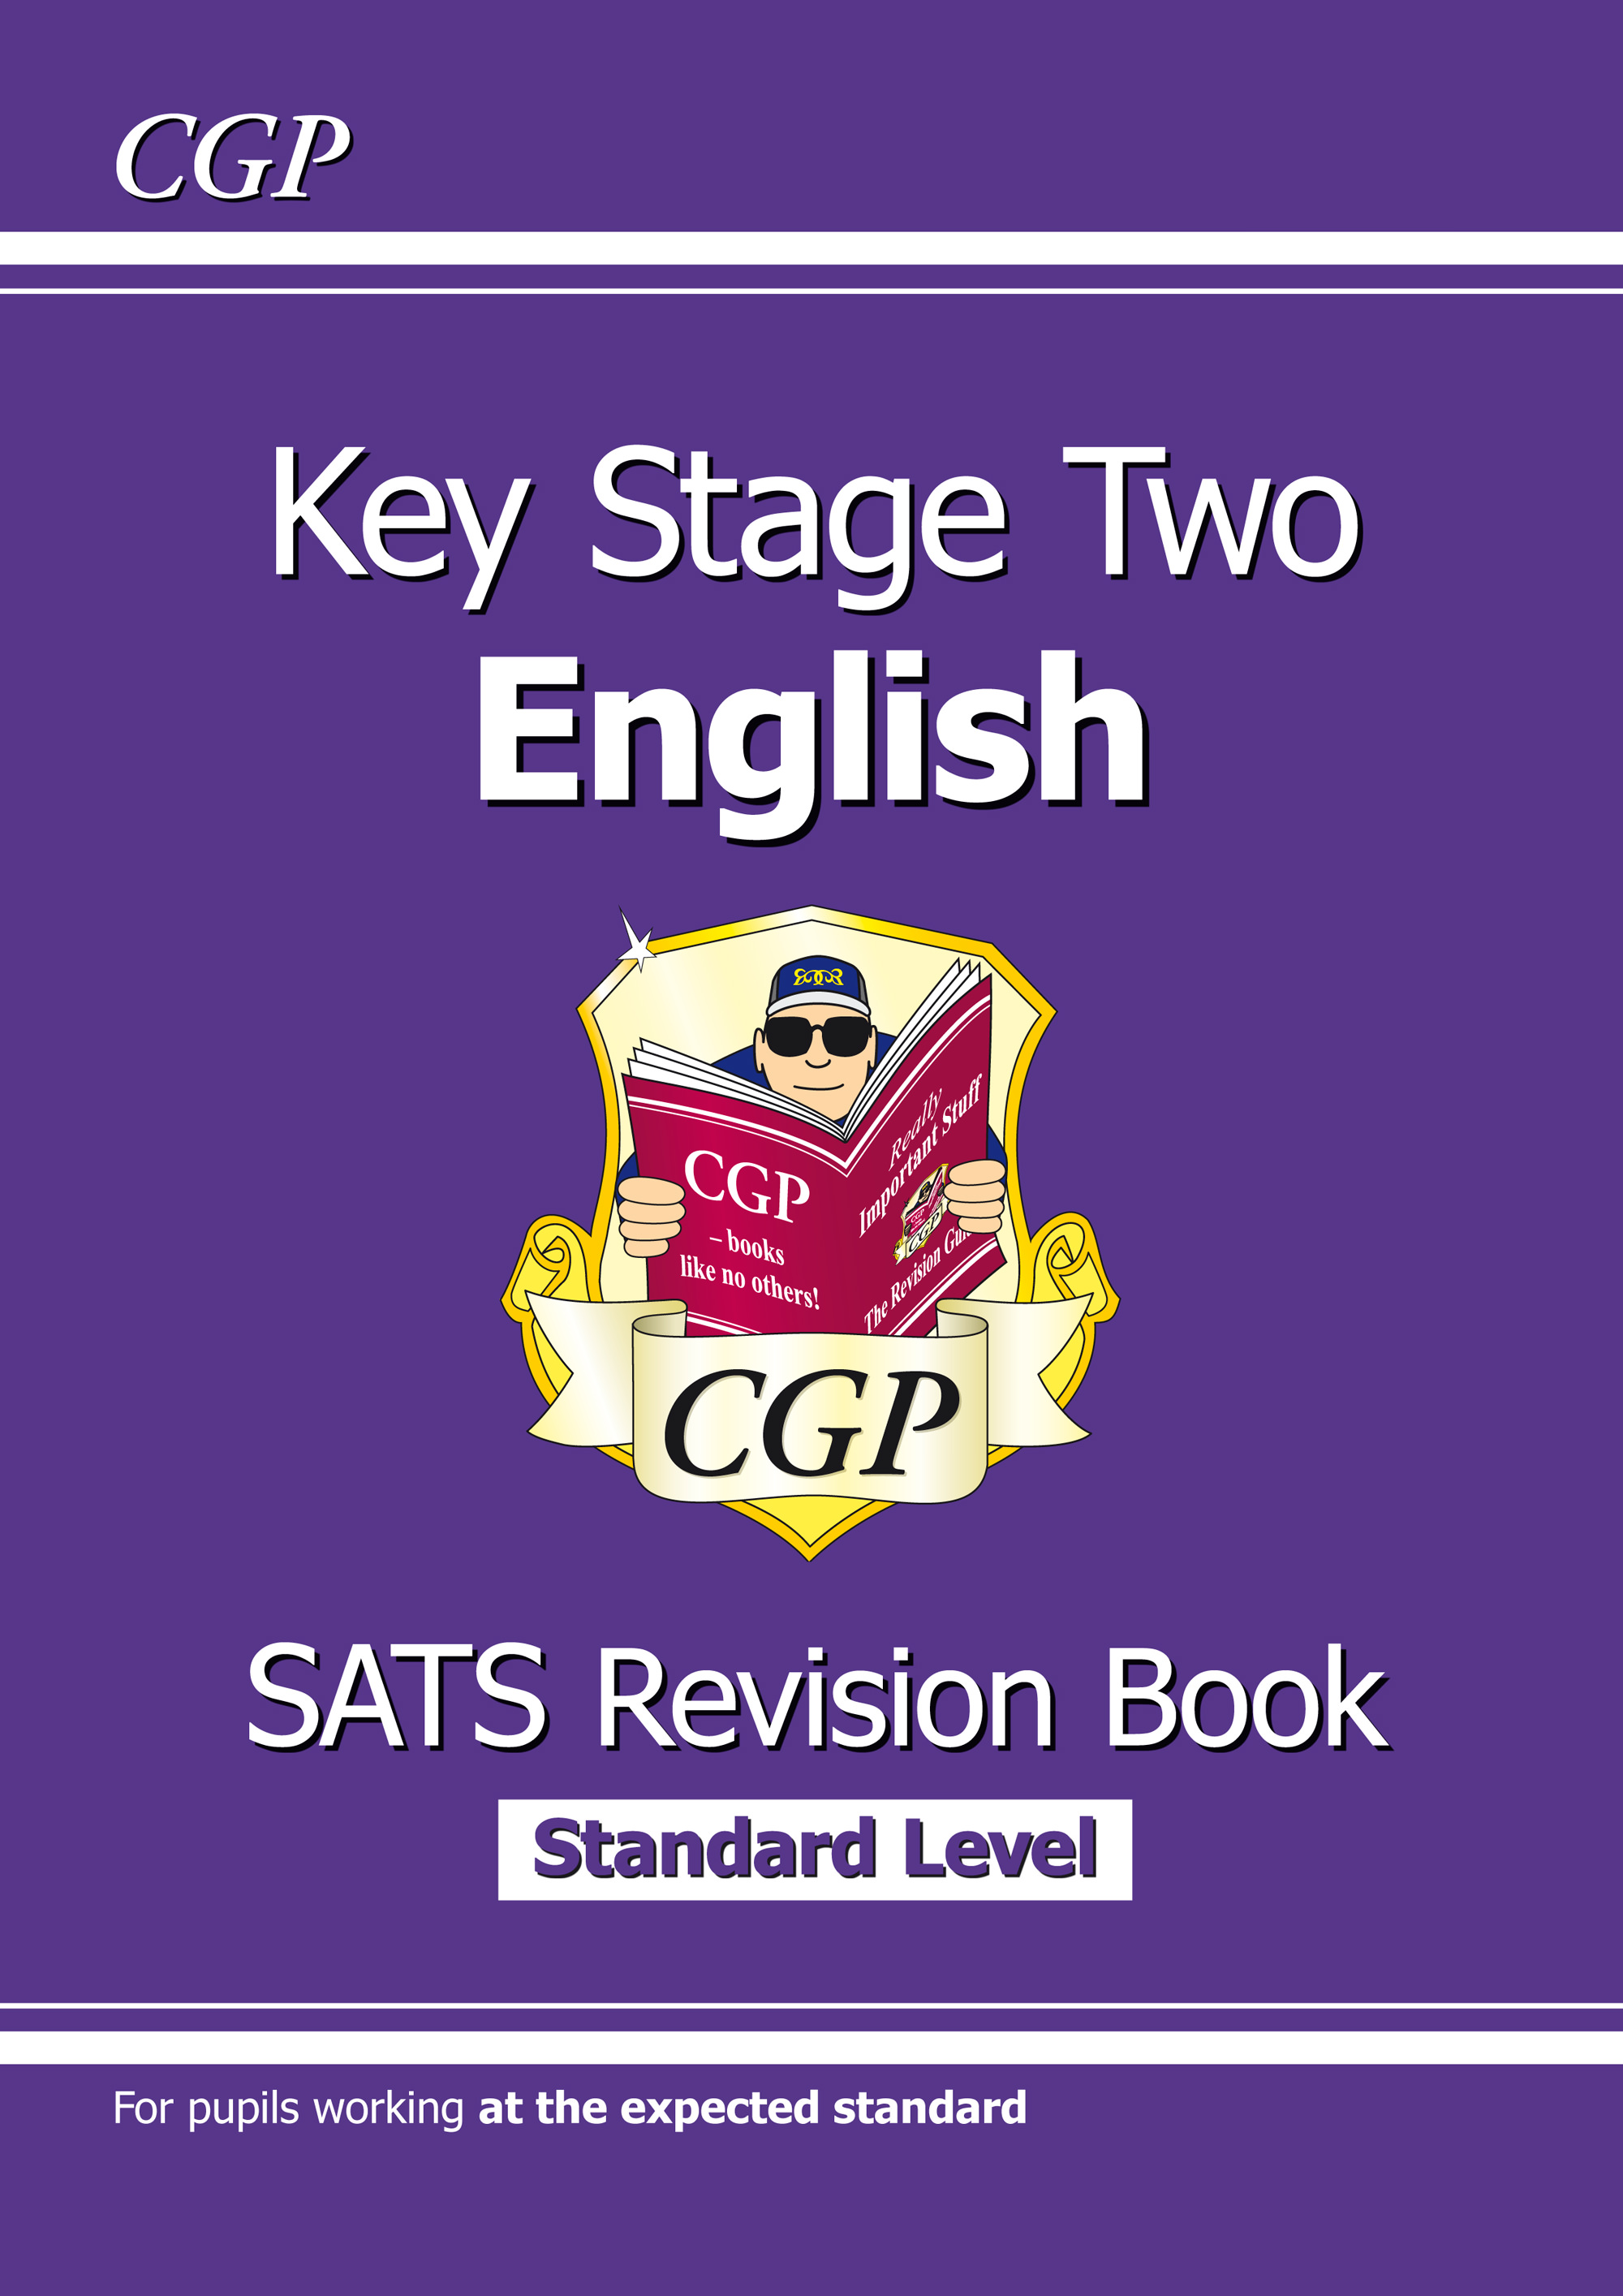 E6FR22 - KS2 English Targeted SATS Revision Book - Standard Level (for the 2019 tests)